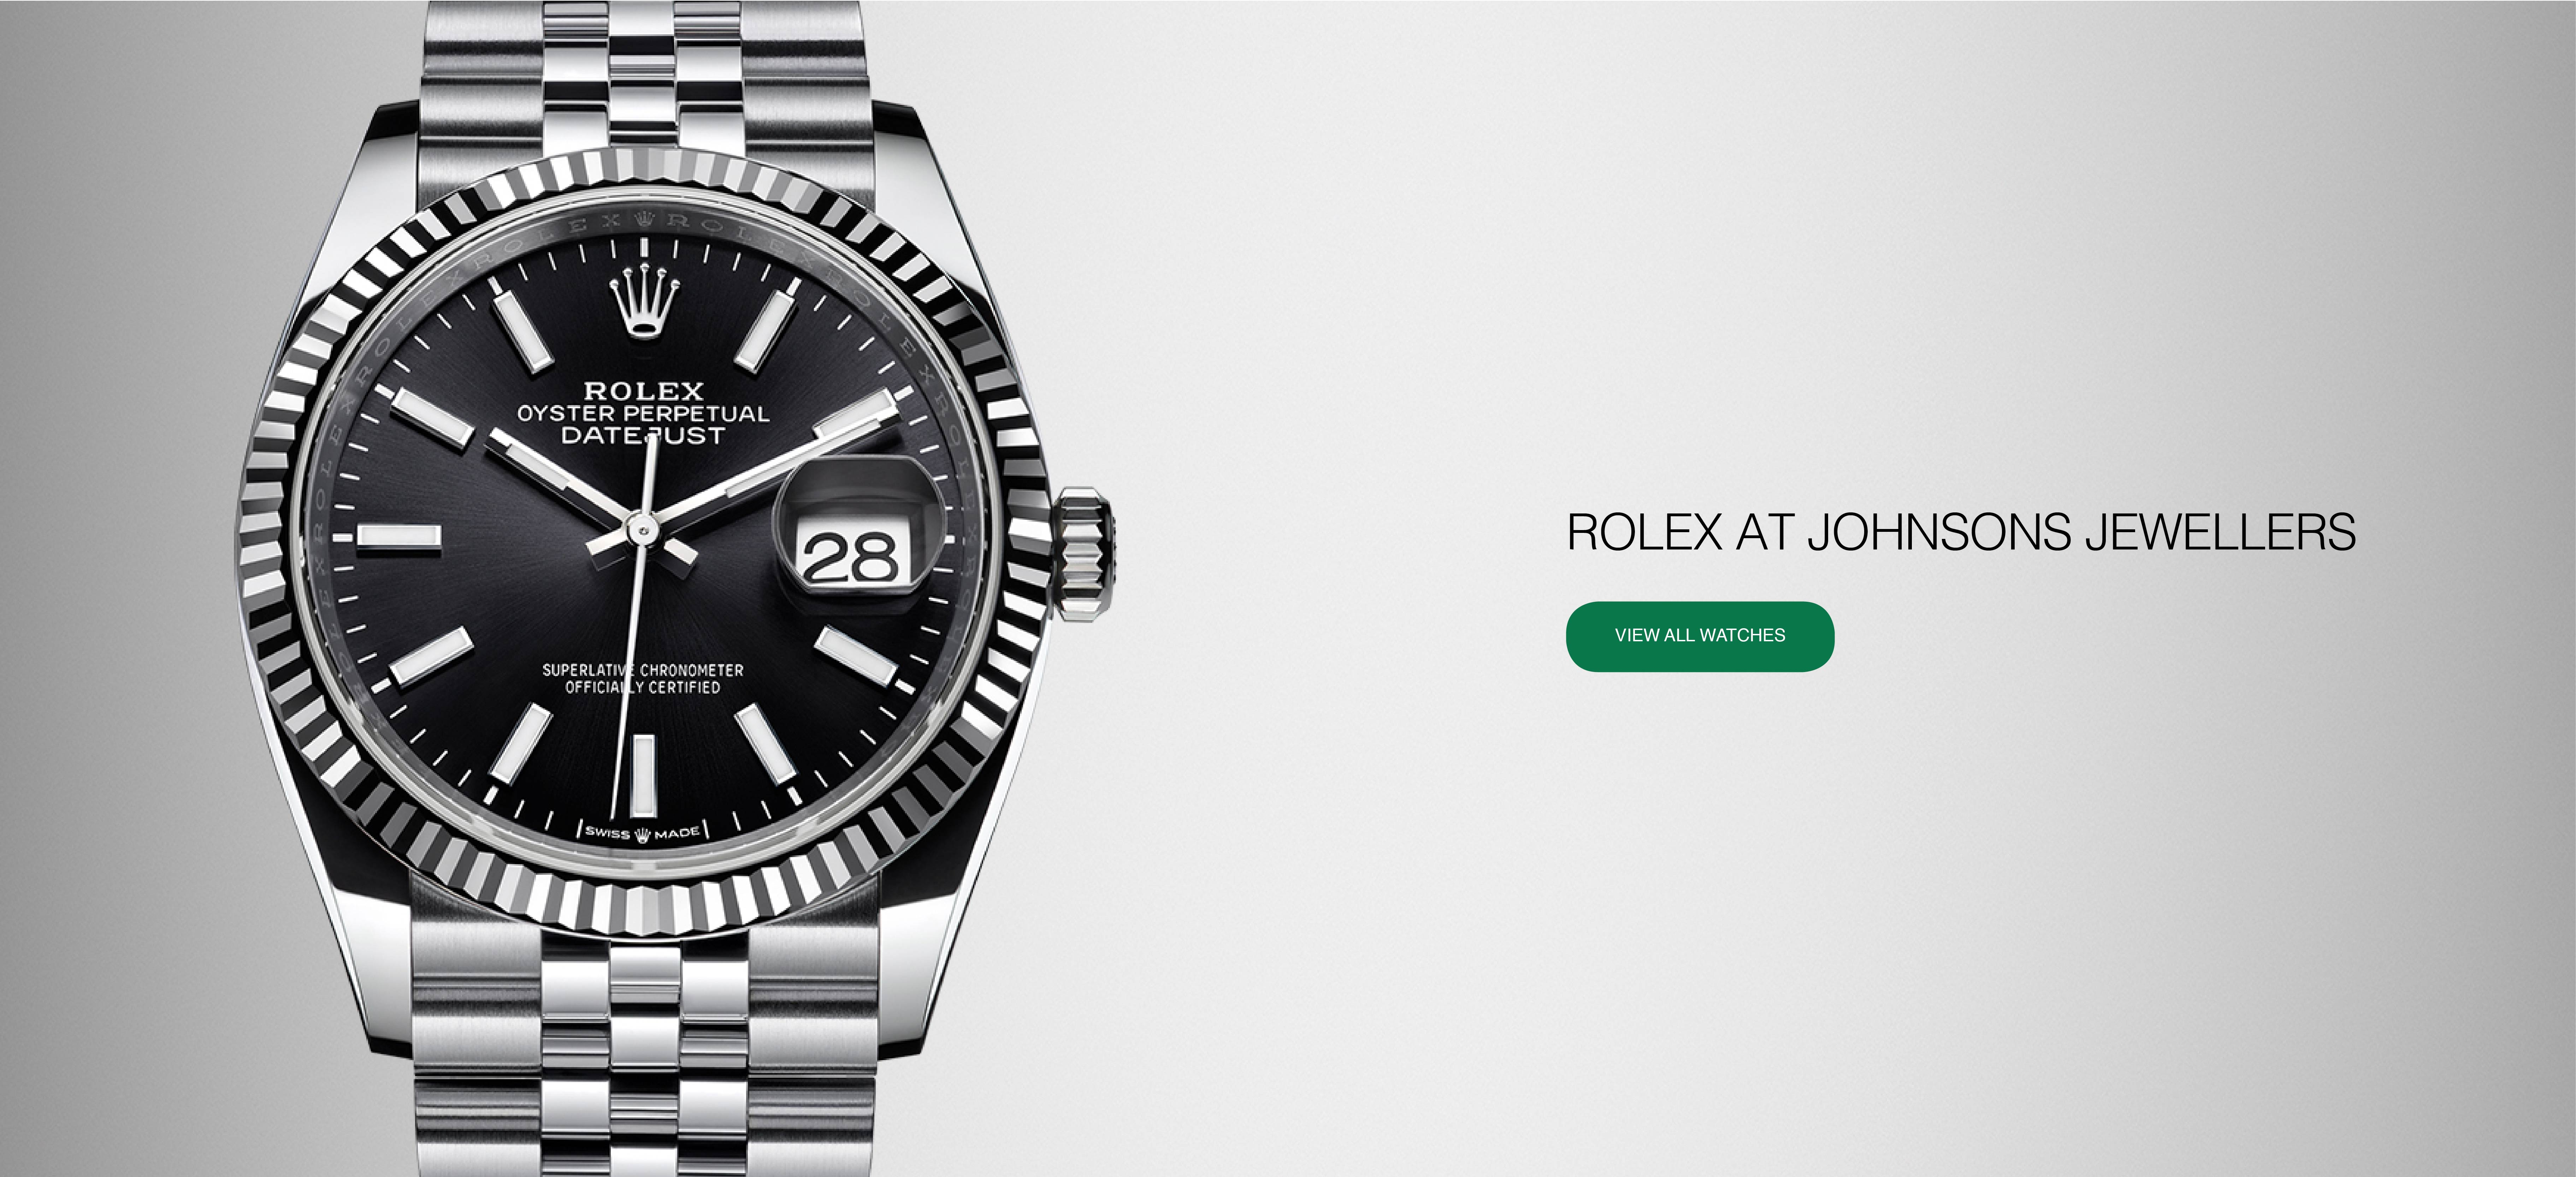 Authorised Rolex Stockist